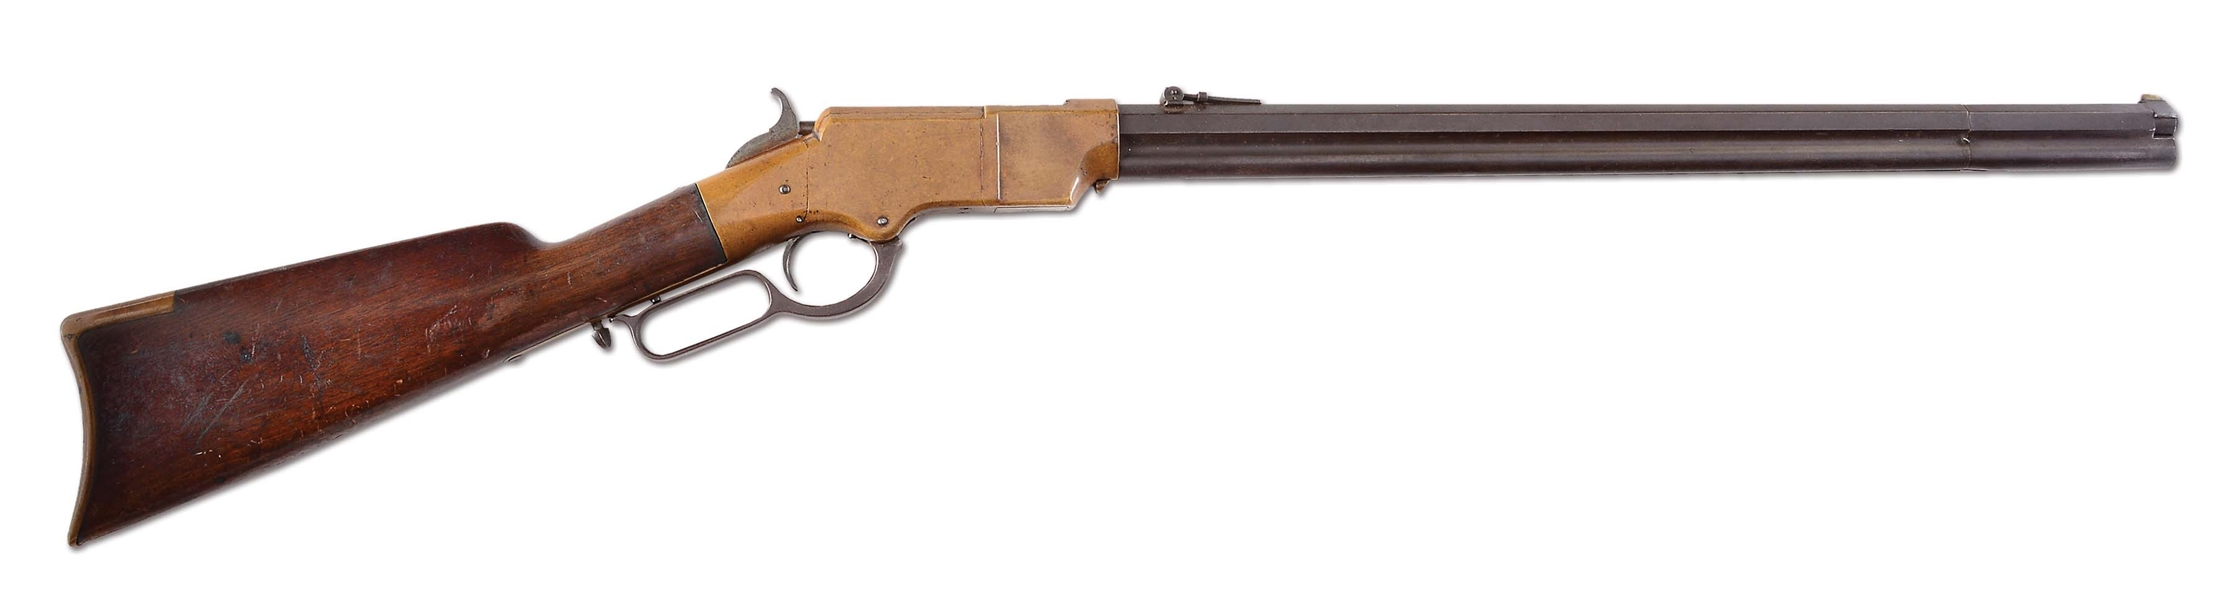 "(A) HENRY MODEL 1860 LEVER ACTION RIFLE, MARKED ""W. F. GILBERT 1870""."